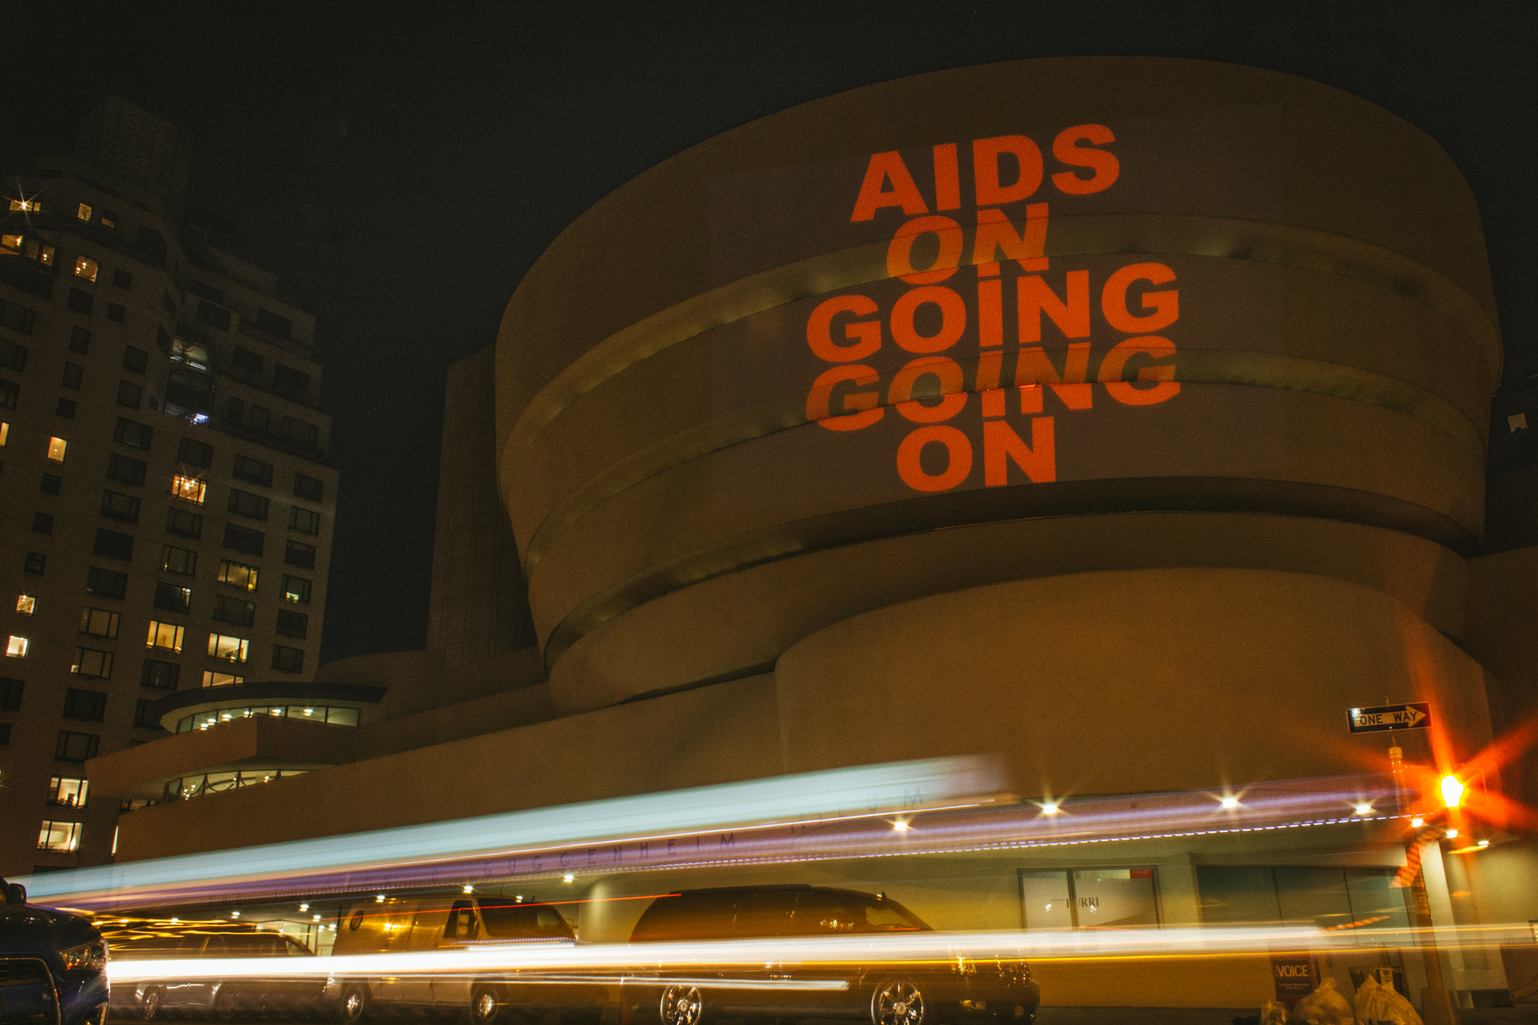 """AIDS, On Going, Going On,"""" Radiant Presence , Day With(out)Art, projection by Visual AIDS, December 1, 2015, New York City"""